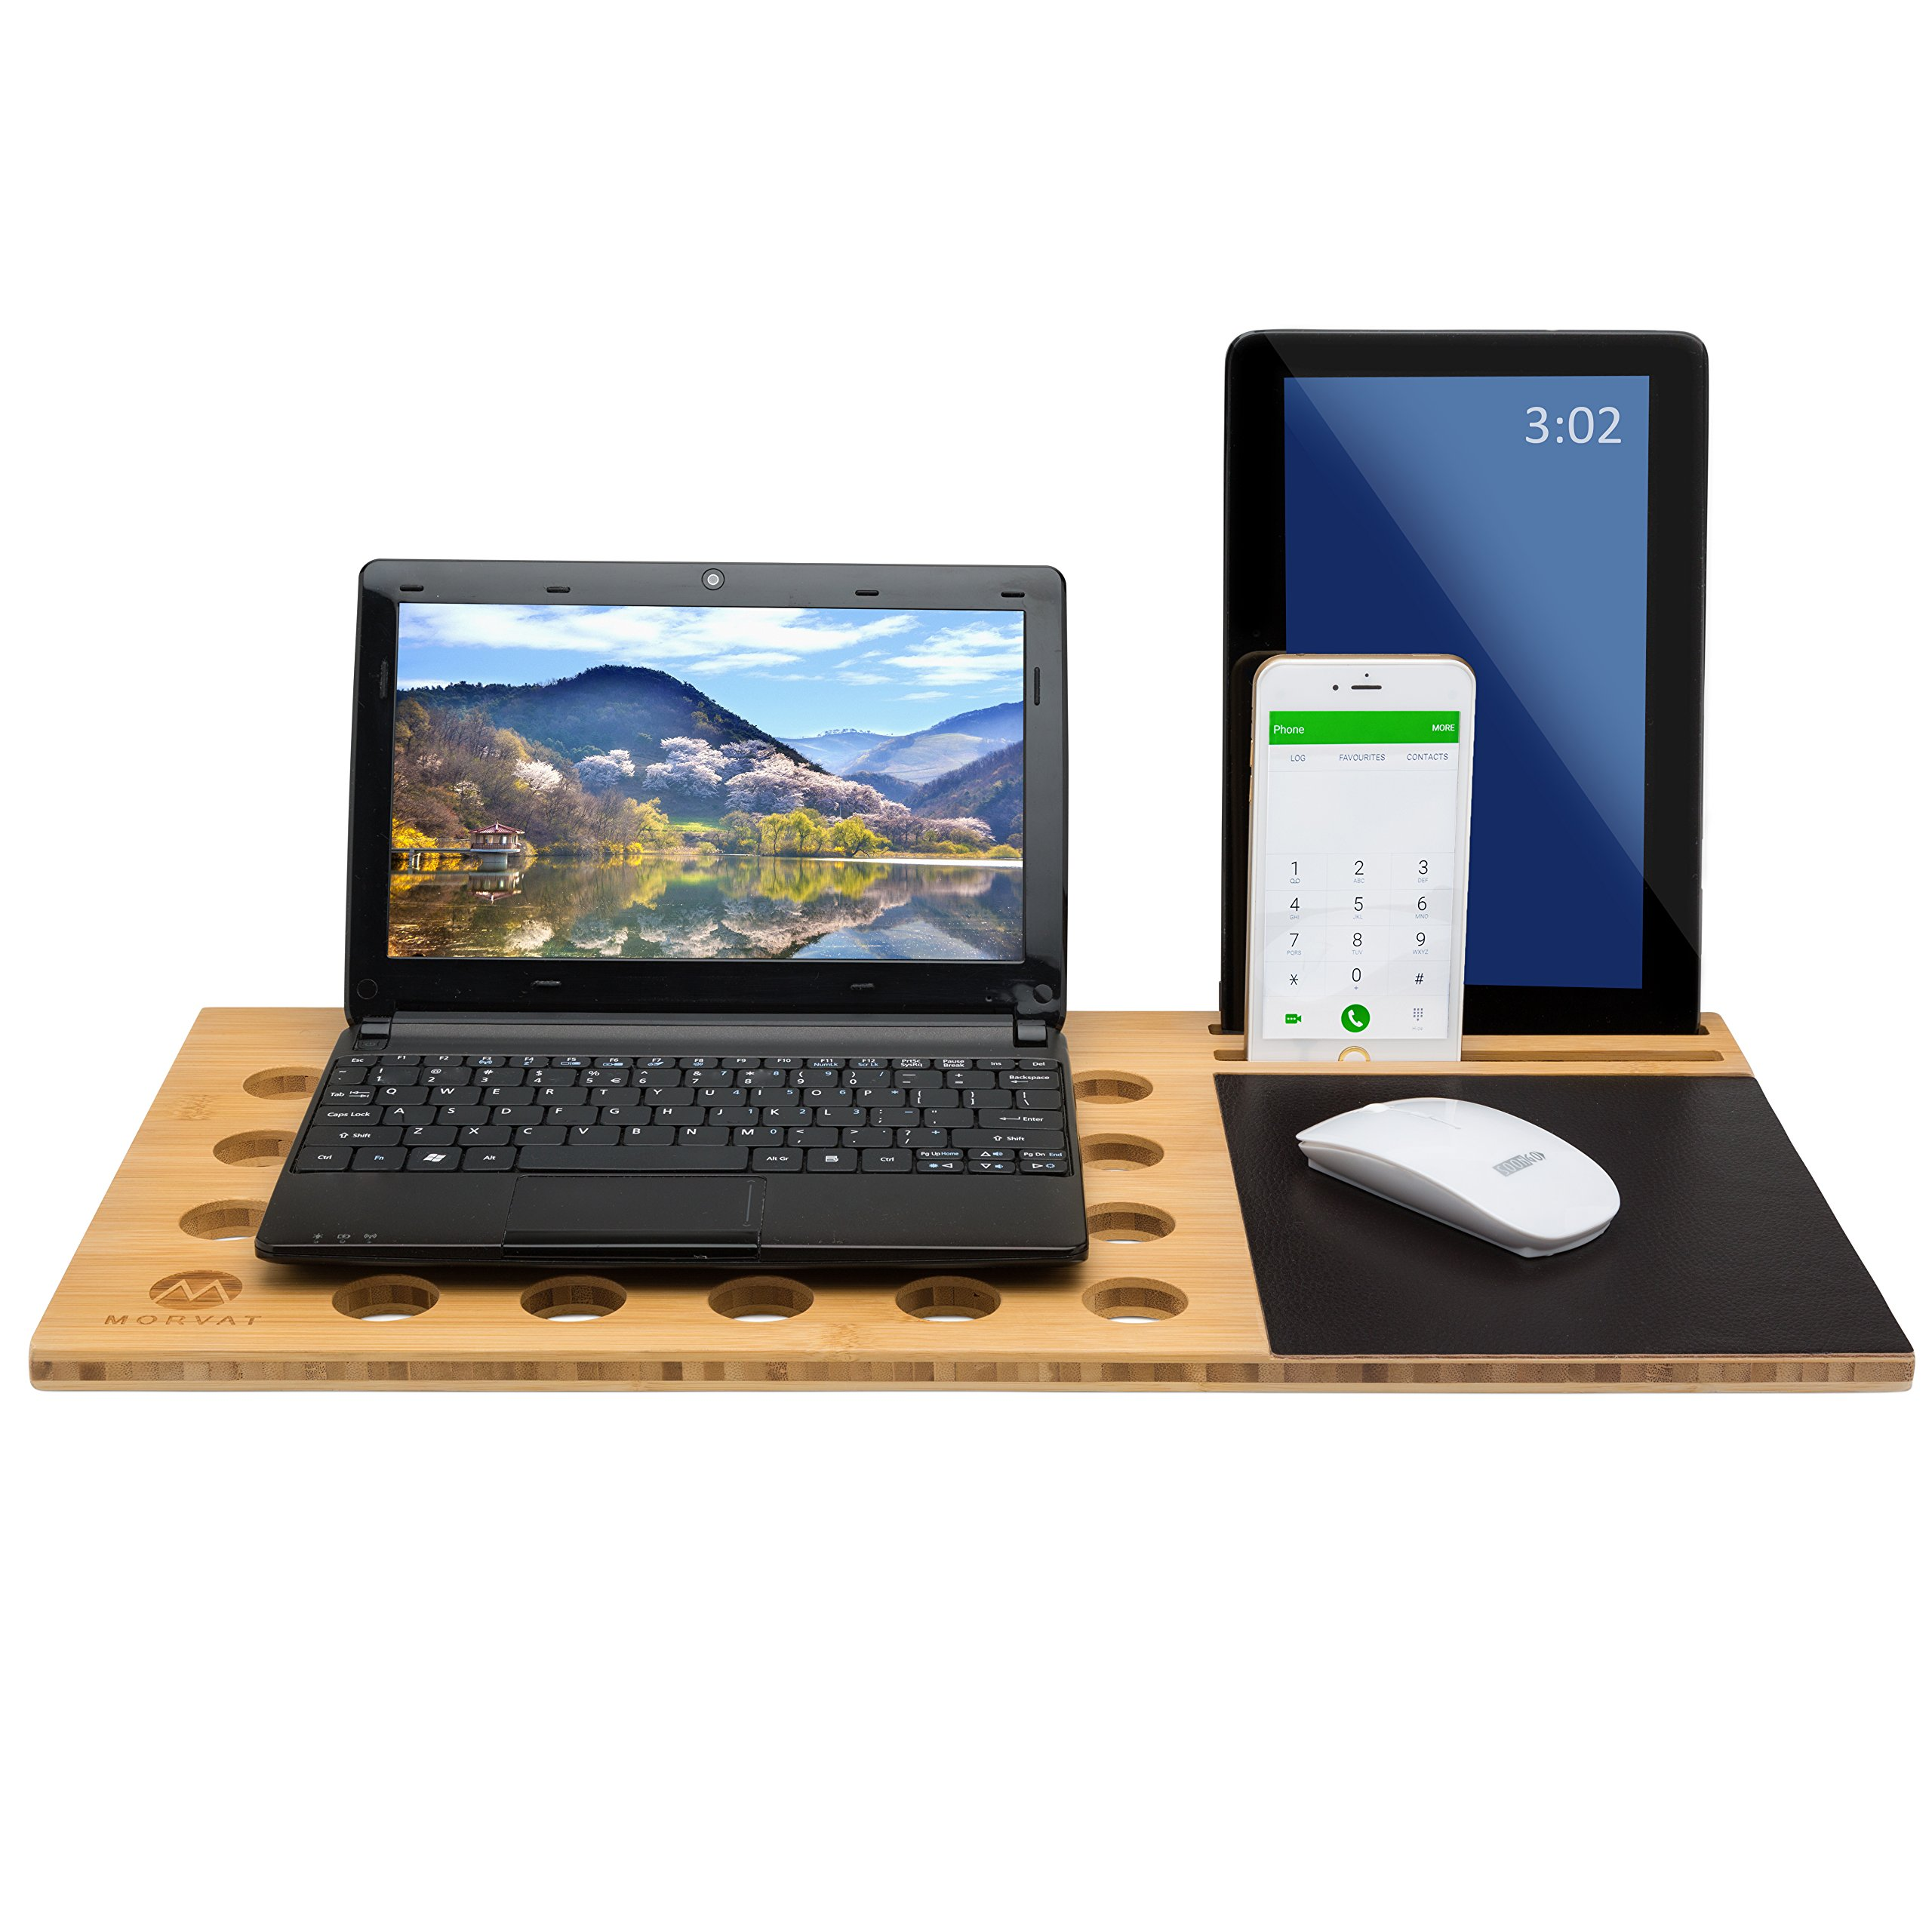 Morvat Bamboo Computer Lap Desk Board by Multi-Tasking Laptop Tablet Cellphone Stand Holder with Built-in Mouse Pad, Bed Desk, Laptop Table for Bed, by Morvat